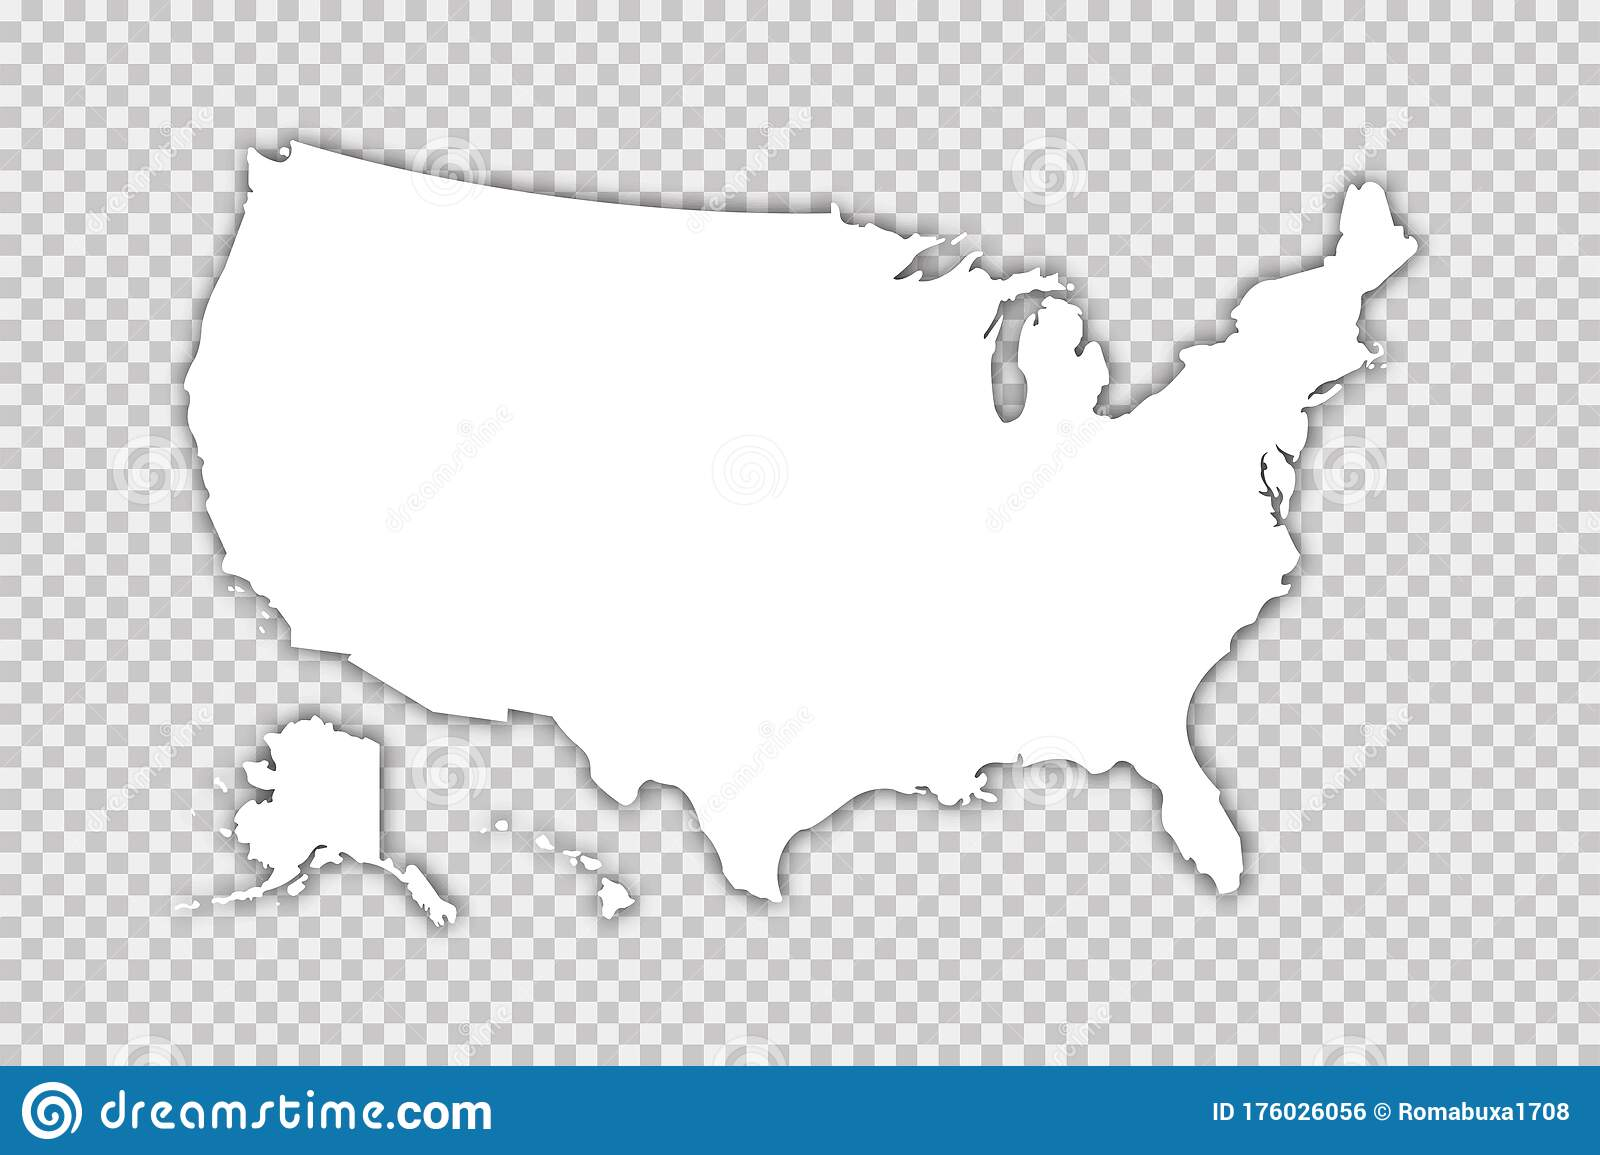 Usa Map Vector Isolated Illustration With Shadow On